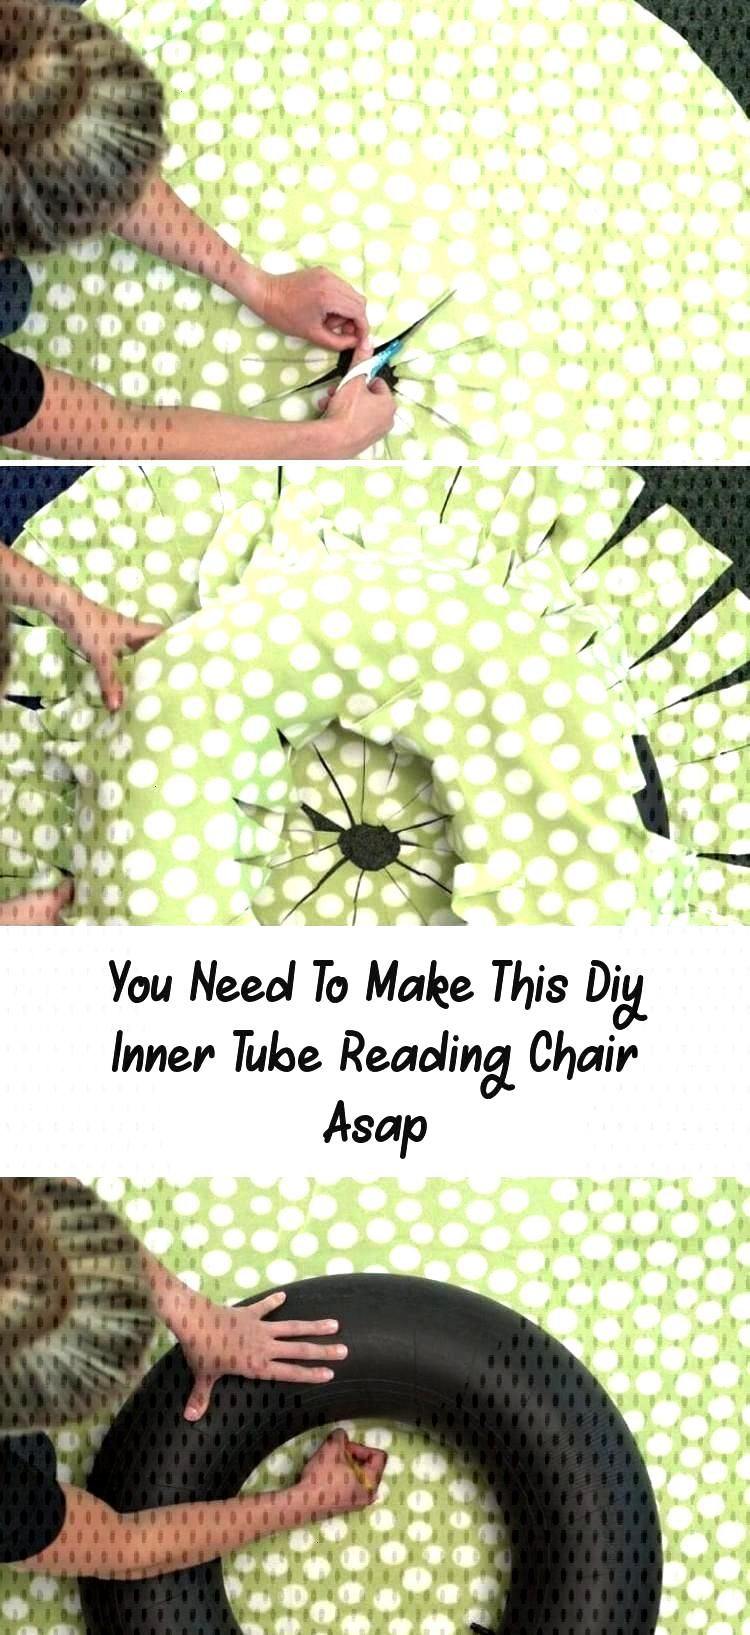 You Need to Make This DIY Inner Tube Reading Chair ASAP. OK, this DIY reading chair is seriously cu